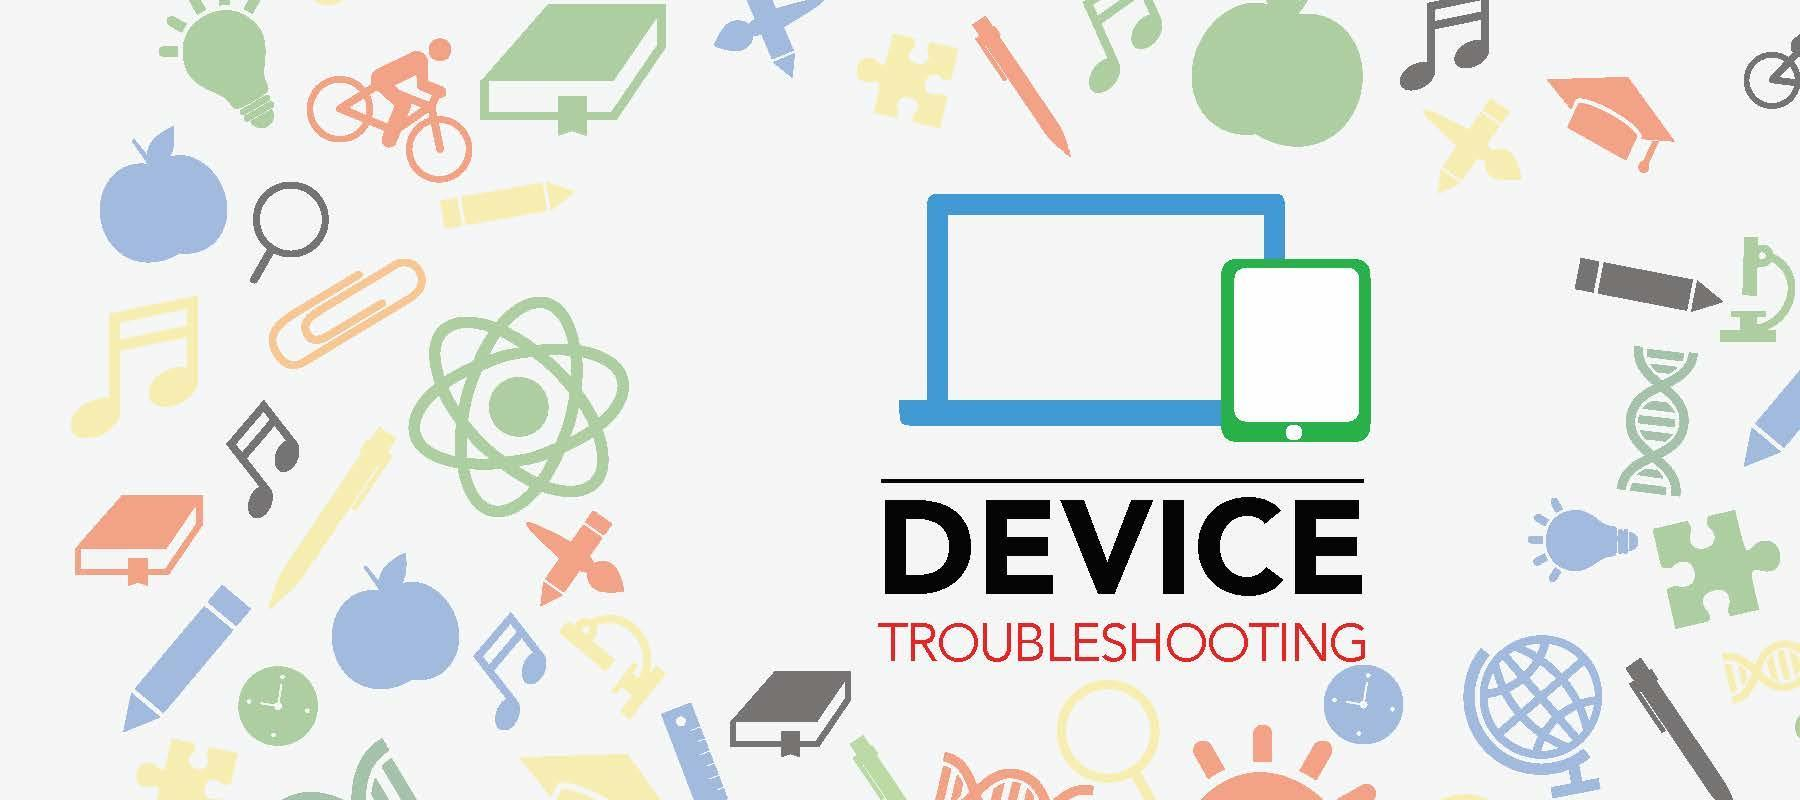 Device Troubleshooting